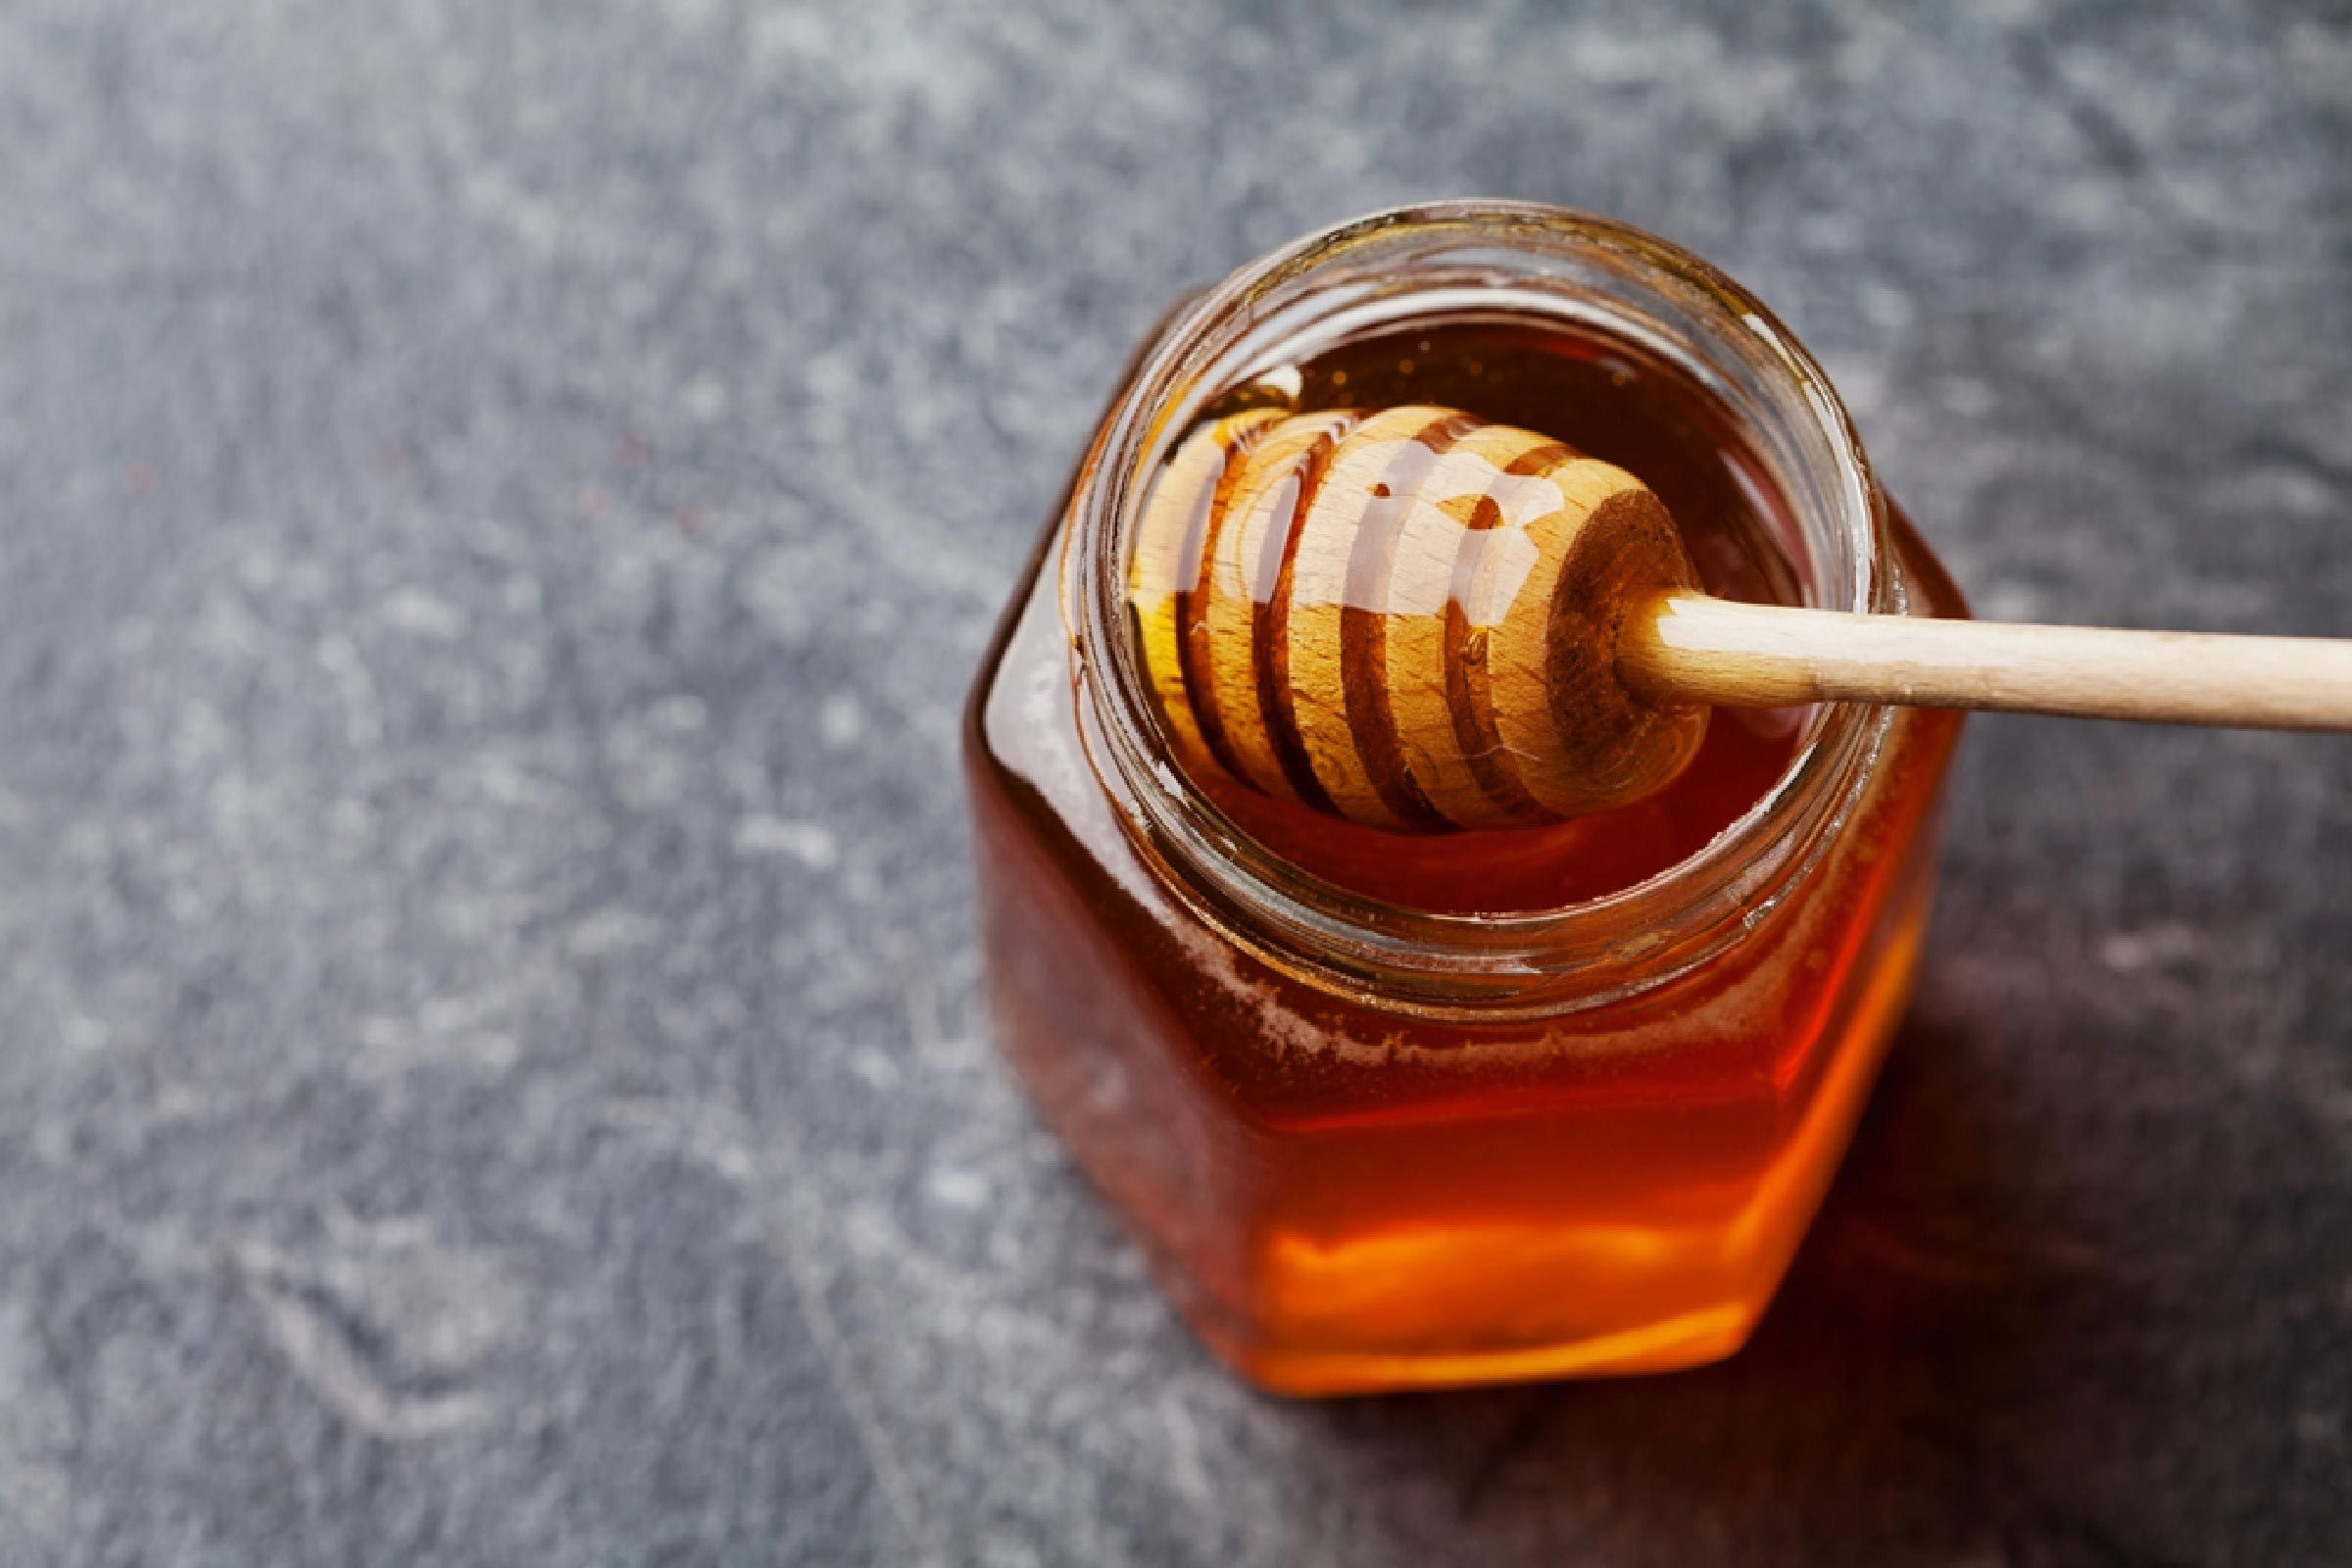 Honey in a pot or jar on kitchen table, top view